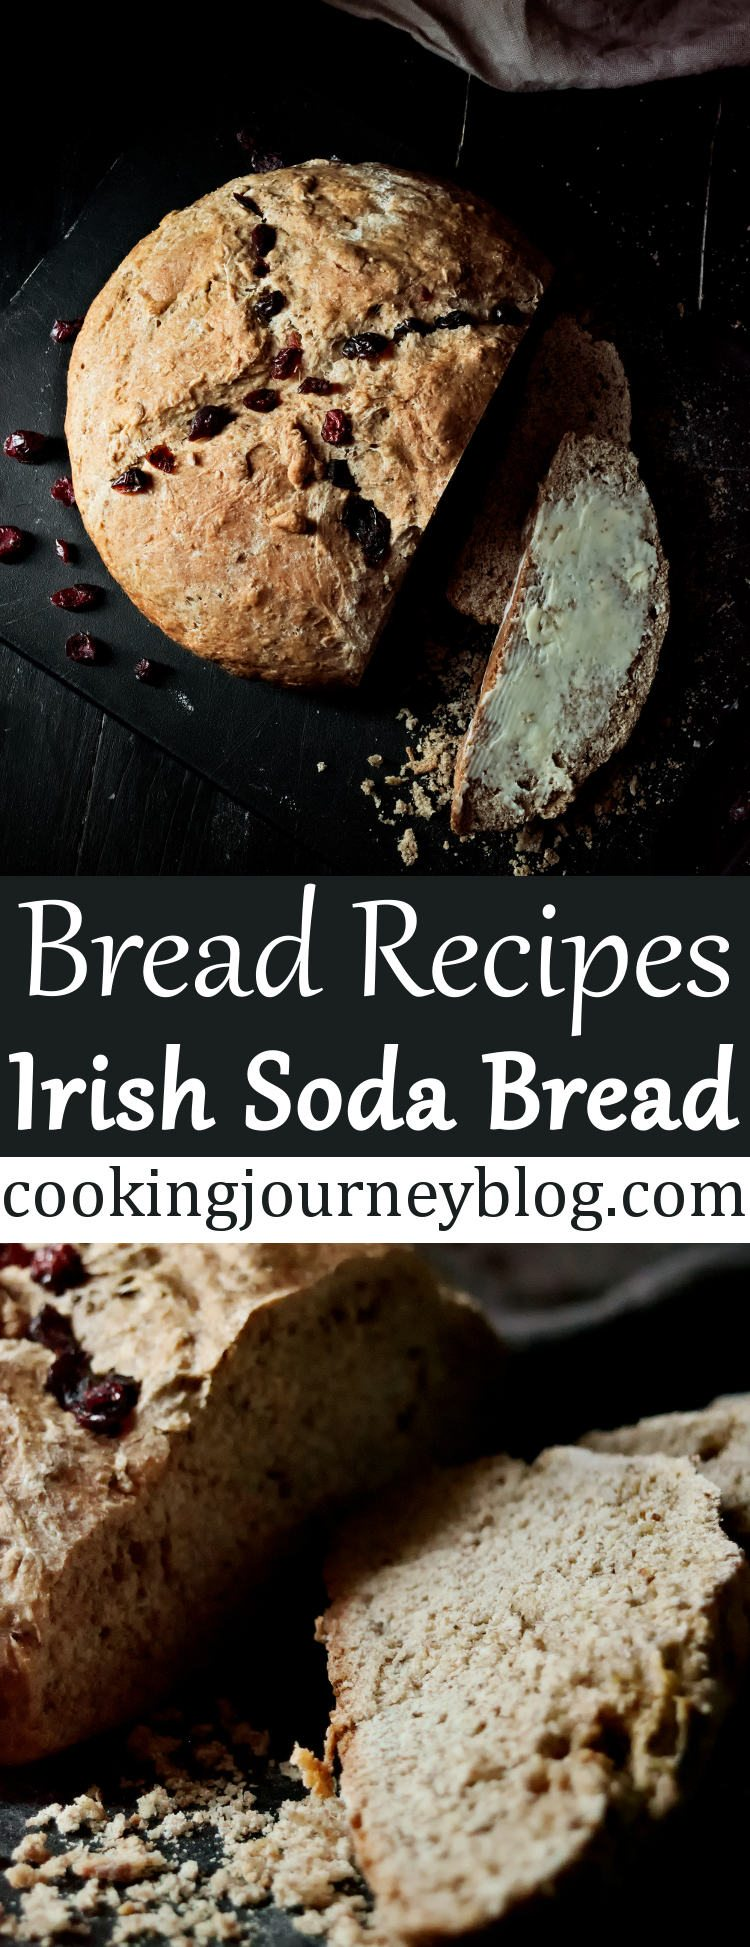 Irish soda bread is an easy homemade bread. This is a traditional Irish food, as for centuries families used to have whole wheat bread on the table. You will love to make this no yeast bread for St Patrick's day or every day! #irish #bread #stpatricksday